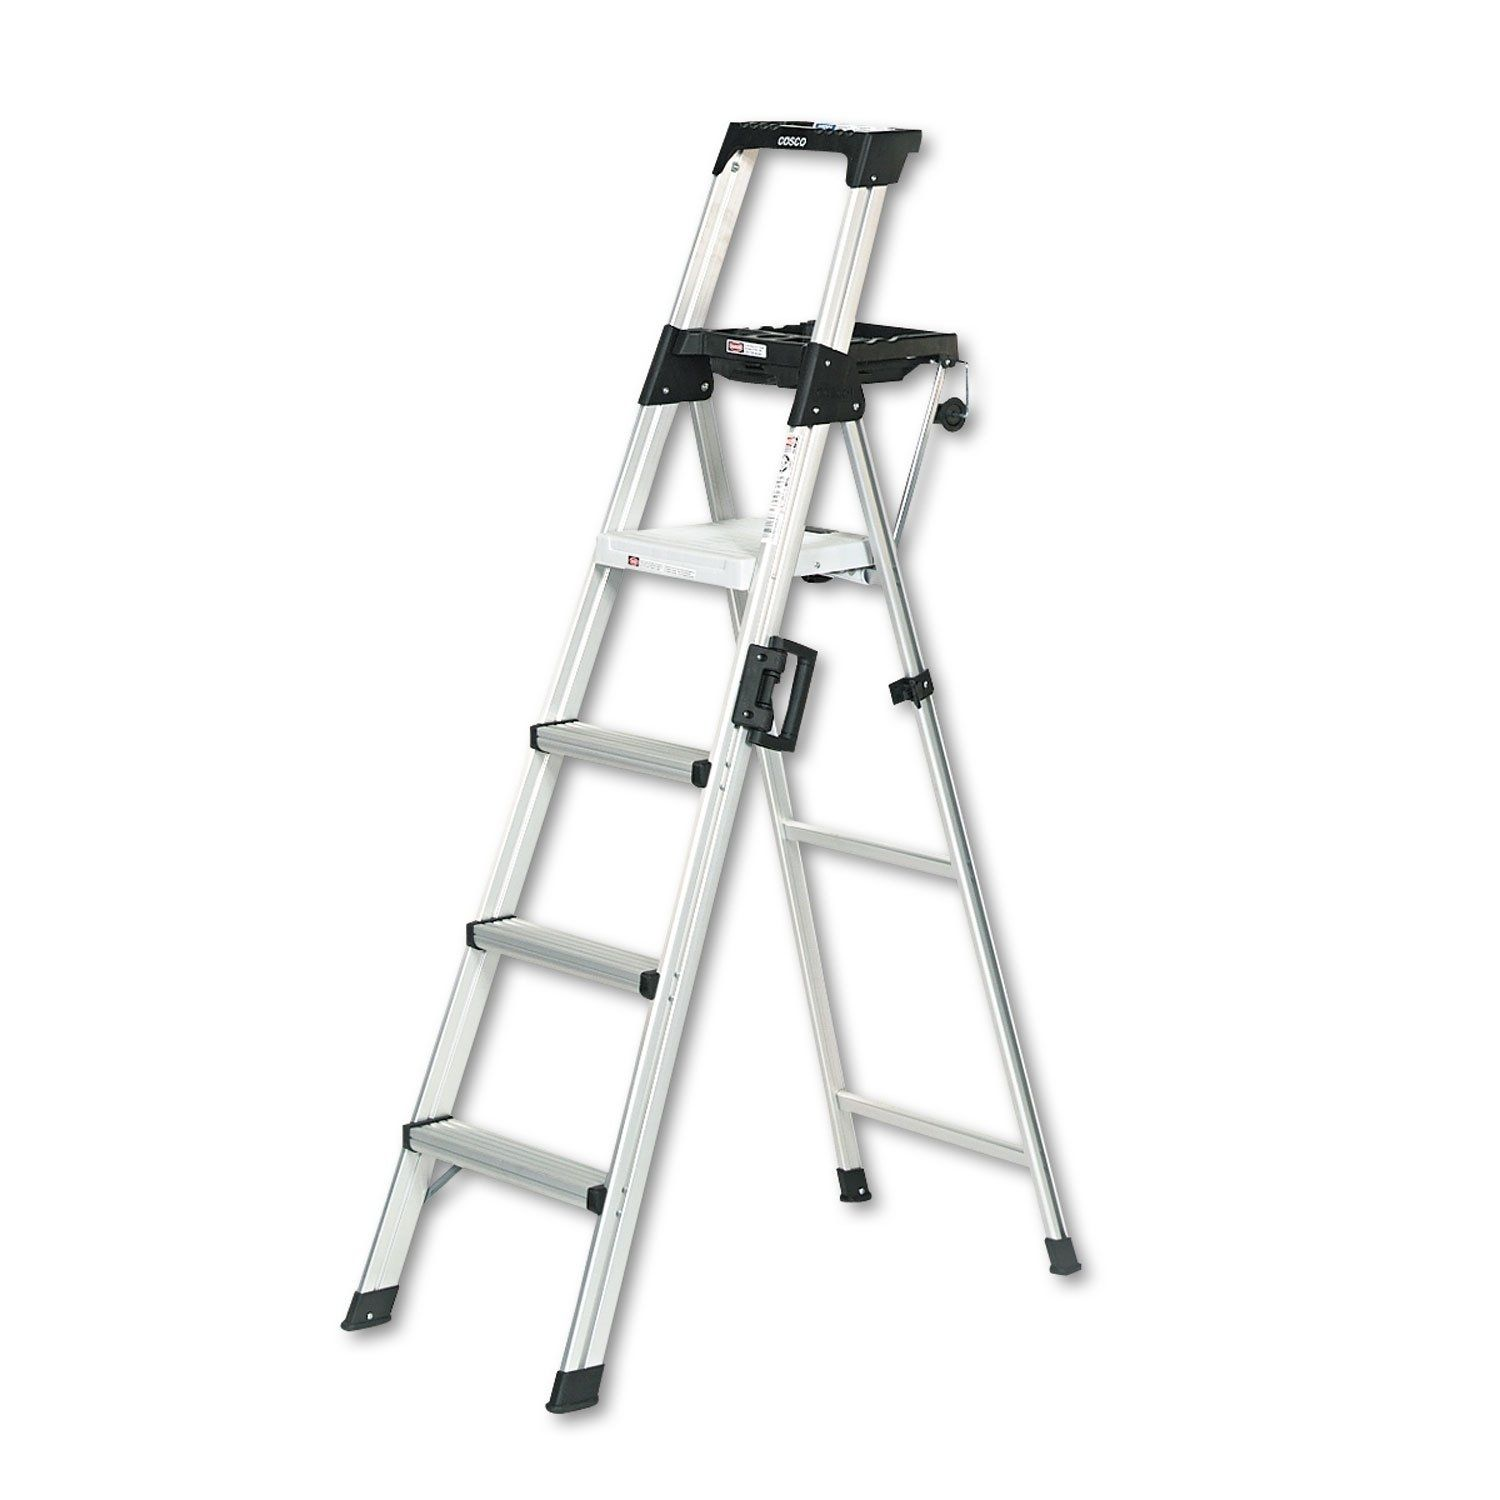 Miraculous Cosco Signature Series Aluminum Folding Step Ladder With Leg Caraccident5 Cool Chair Designs And Ideas Caraccident5Info